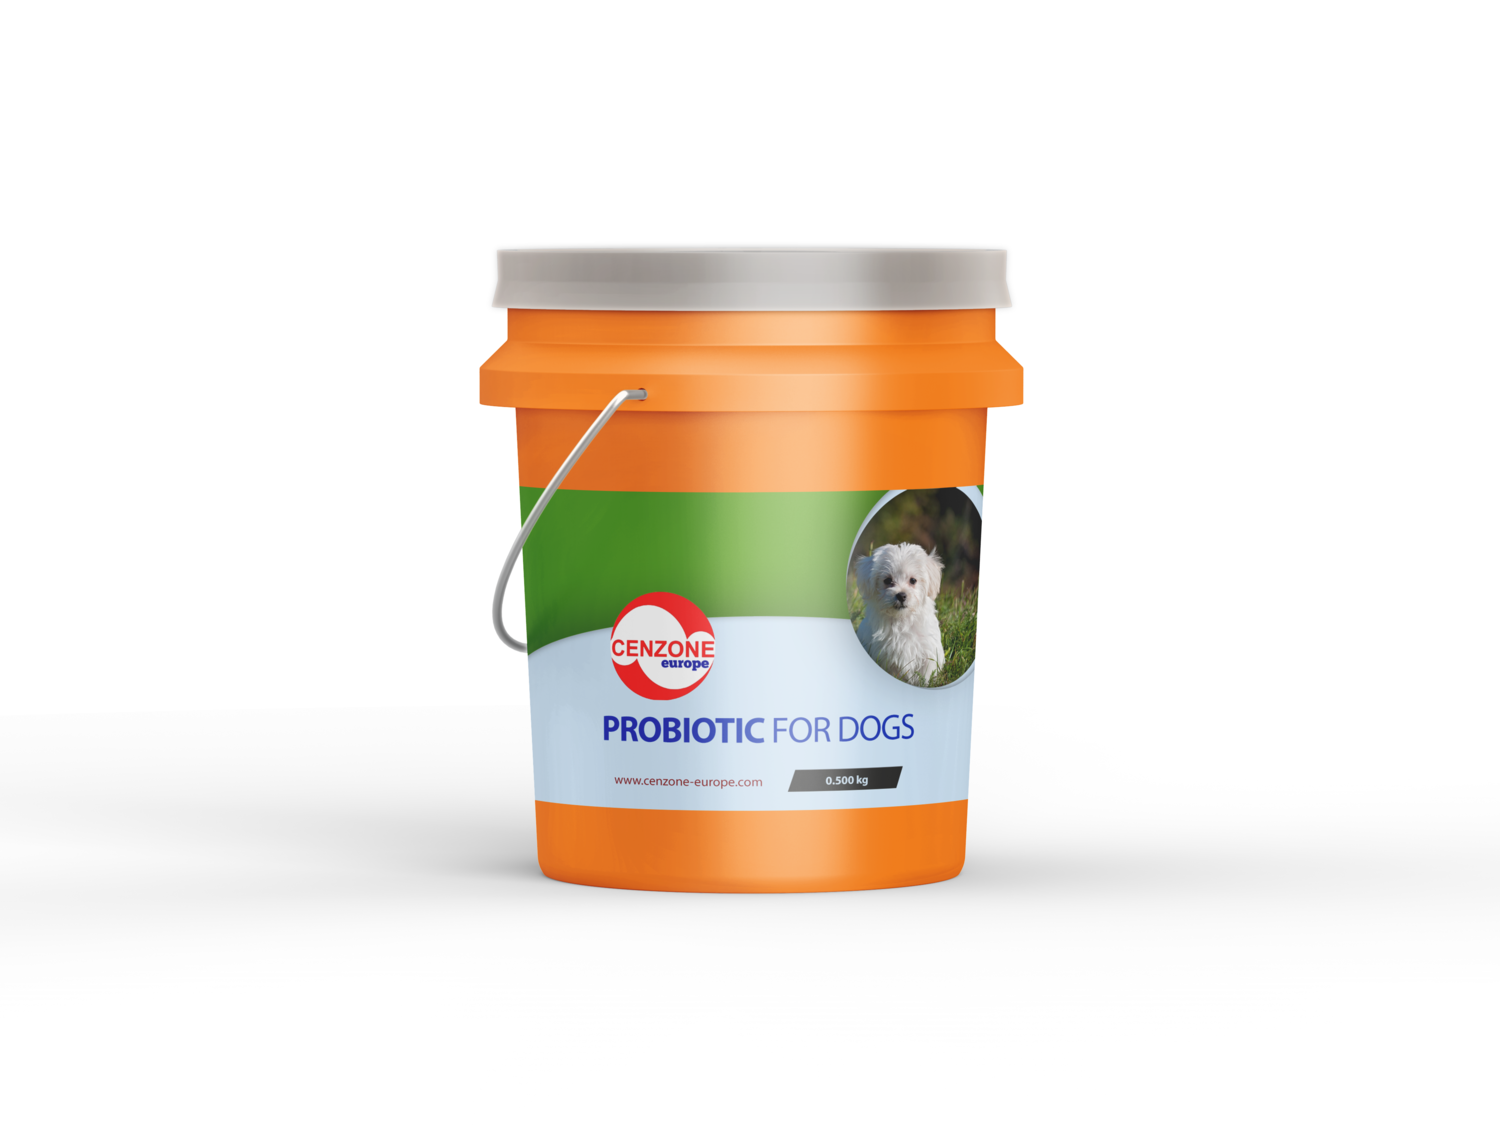 Probiotic for dogs